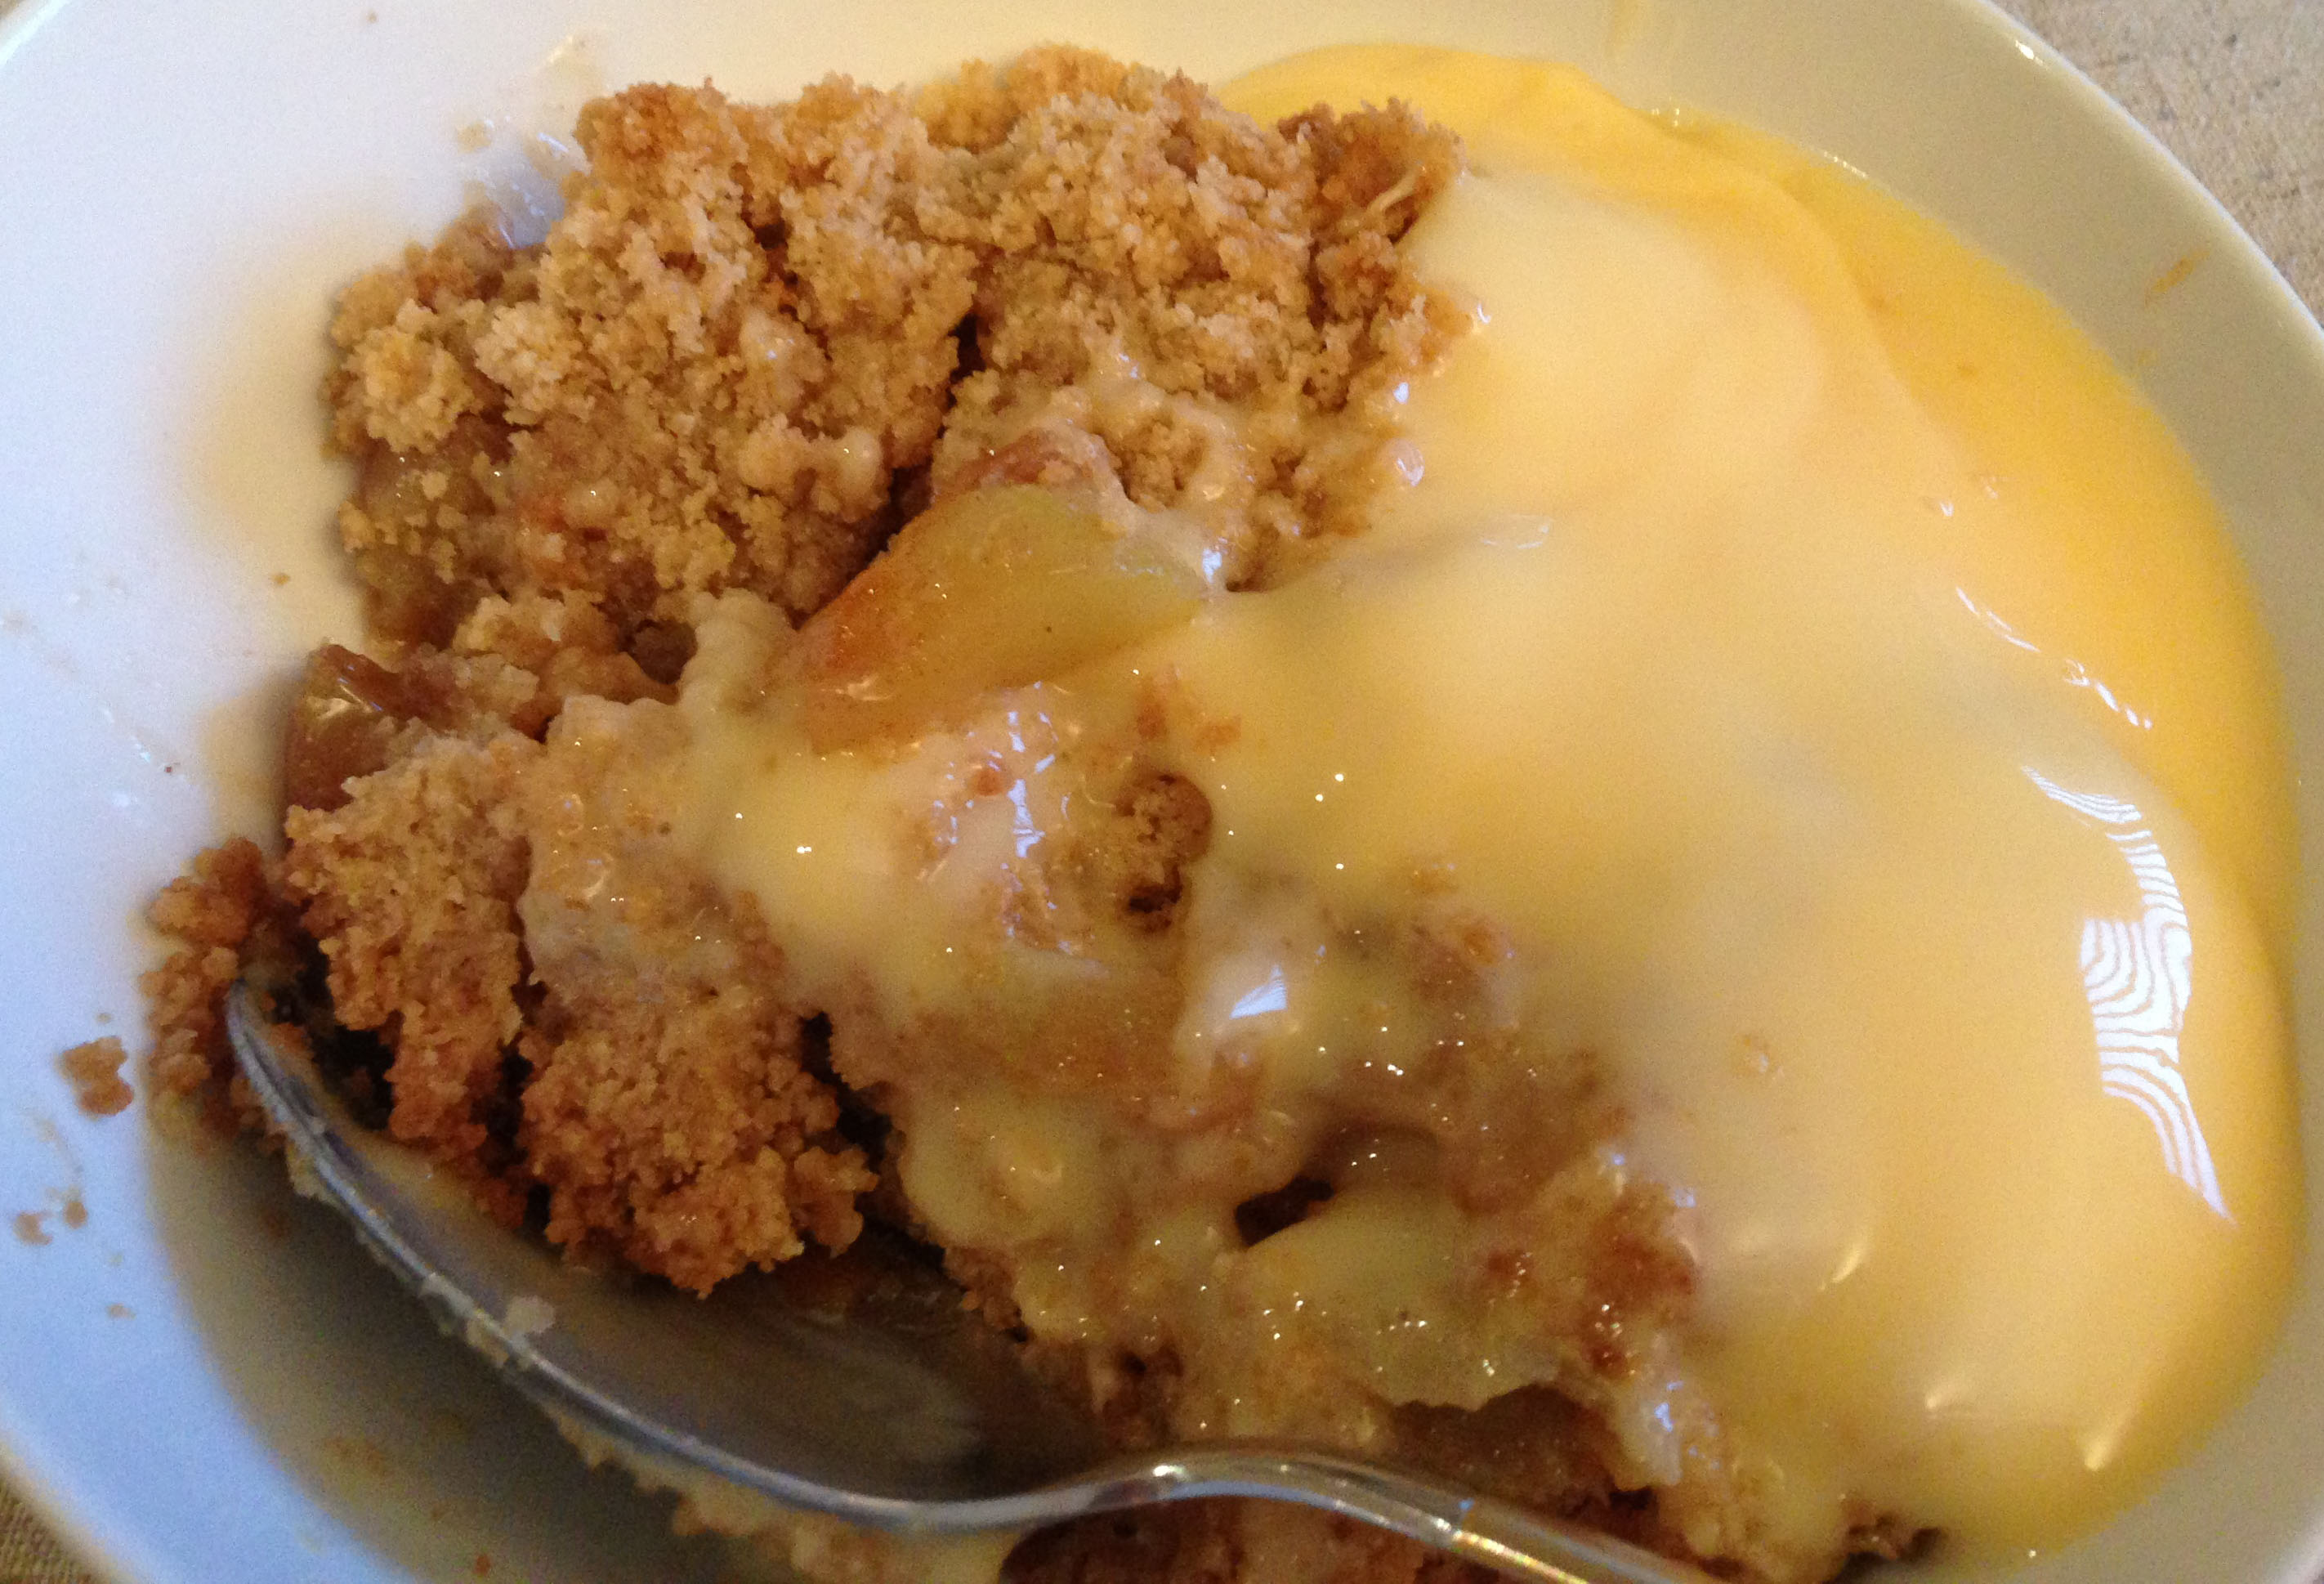 Apple crumble and custard